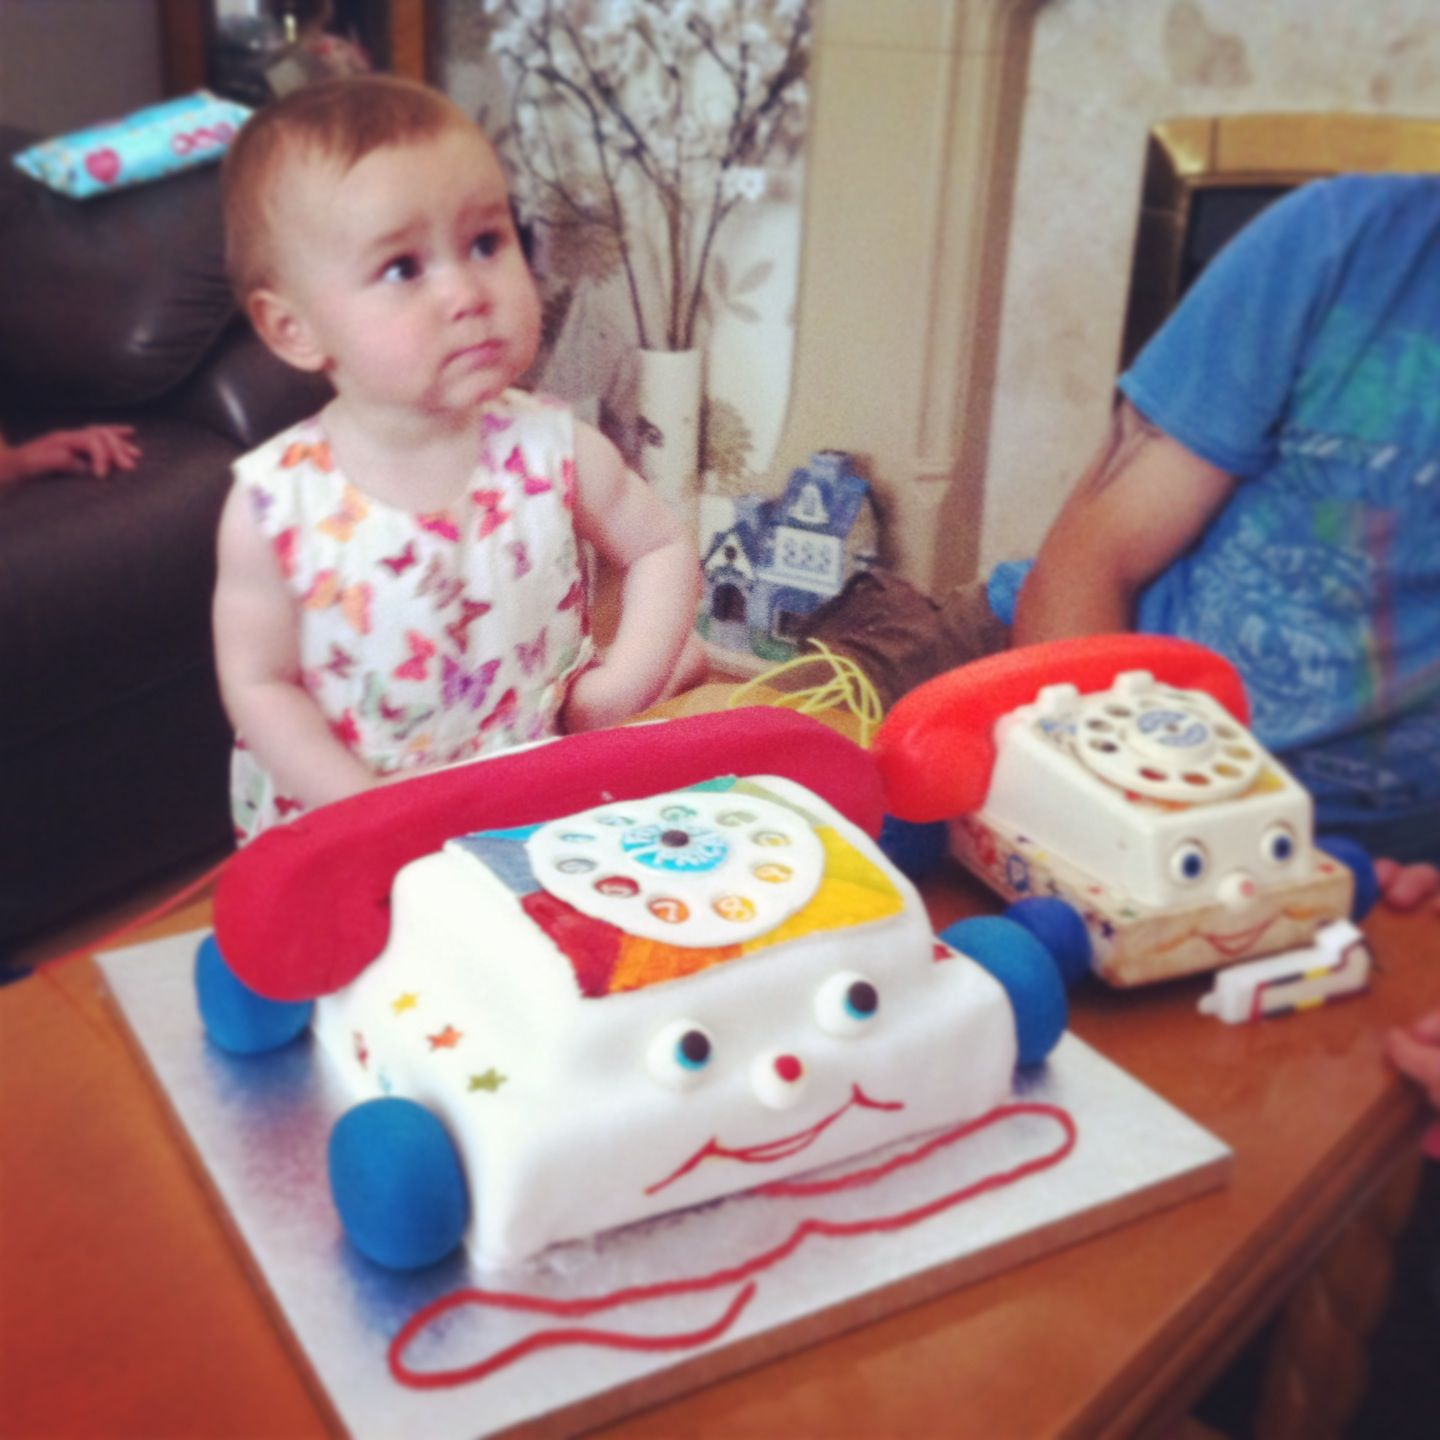 Pleasing 1St Birthday Cake A Fisher Price Telephone Cake With Images Personalised Birthday Cards Beptaeletsinfo